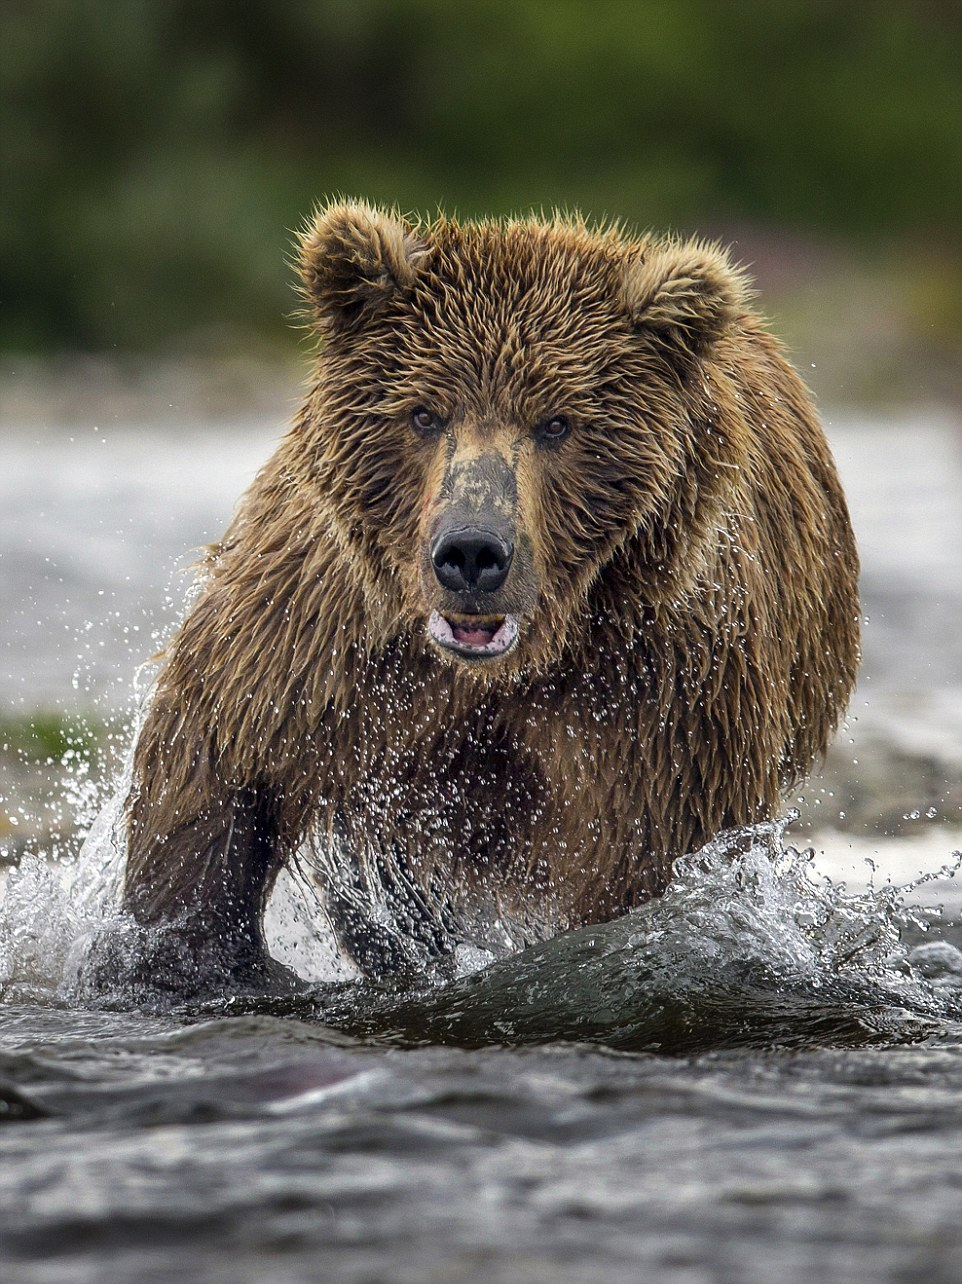 mama-bear-catches-a-salmon-to-feed-her-cubs-14